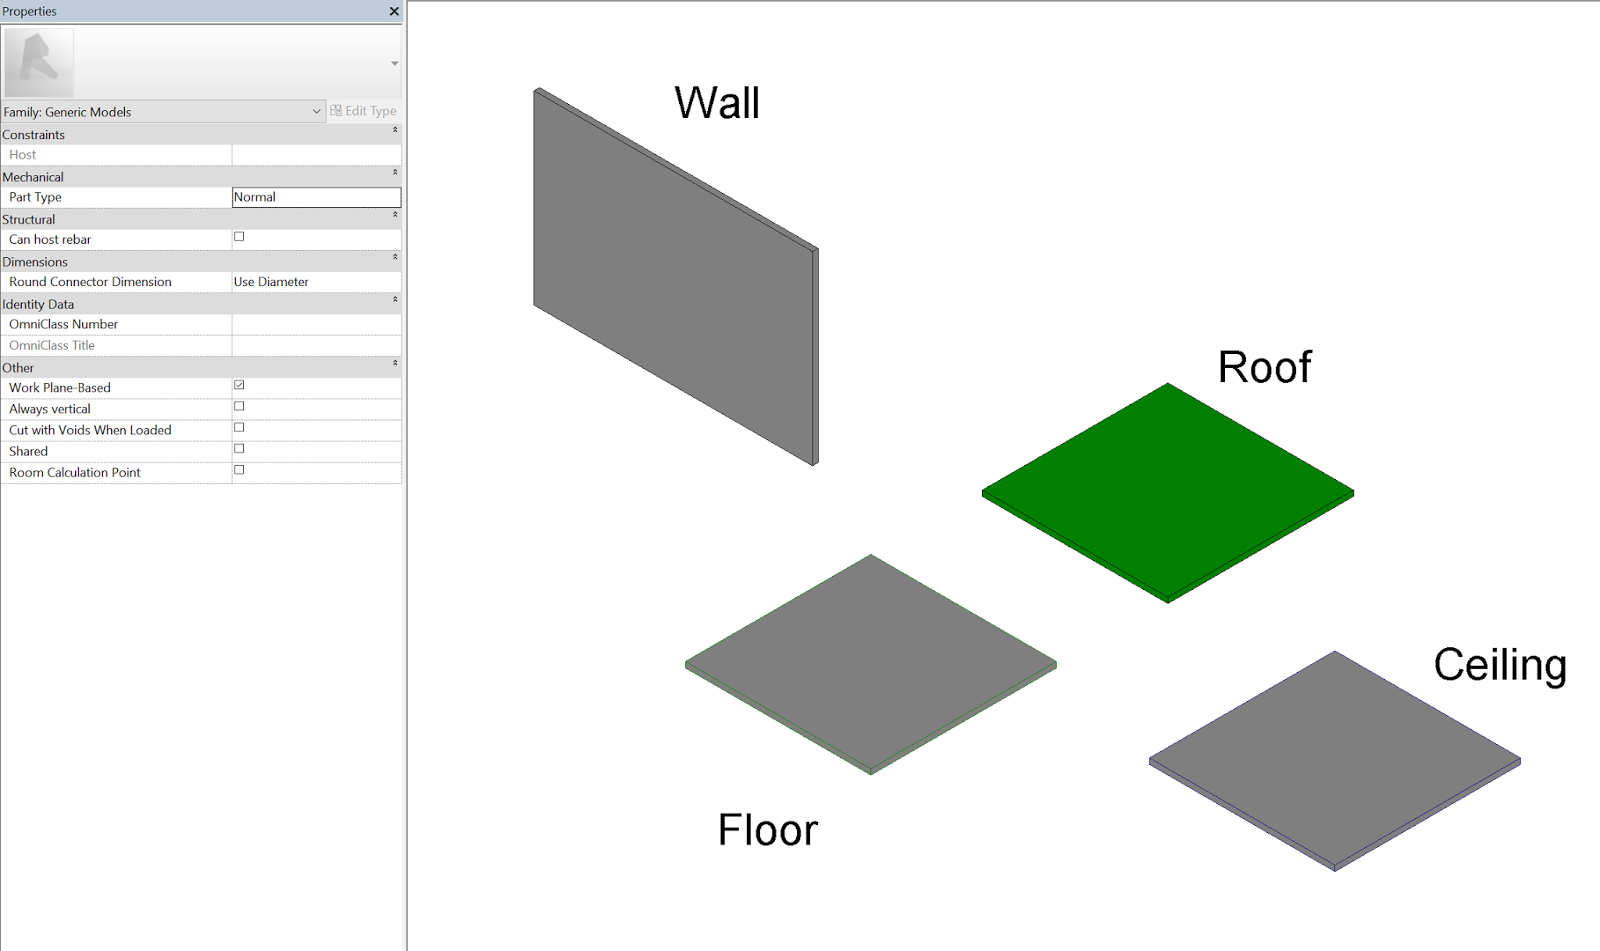 Convert Between Hosted Wall, Face, Ceiling, Floor, and Non